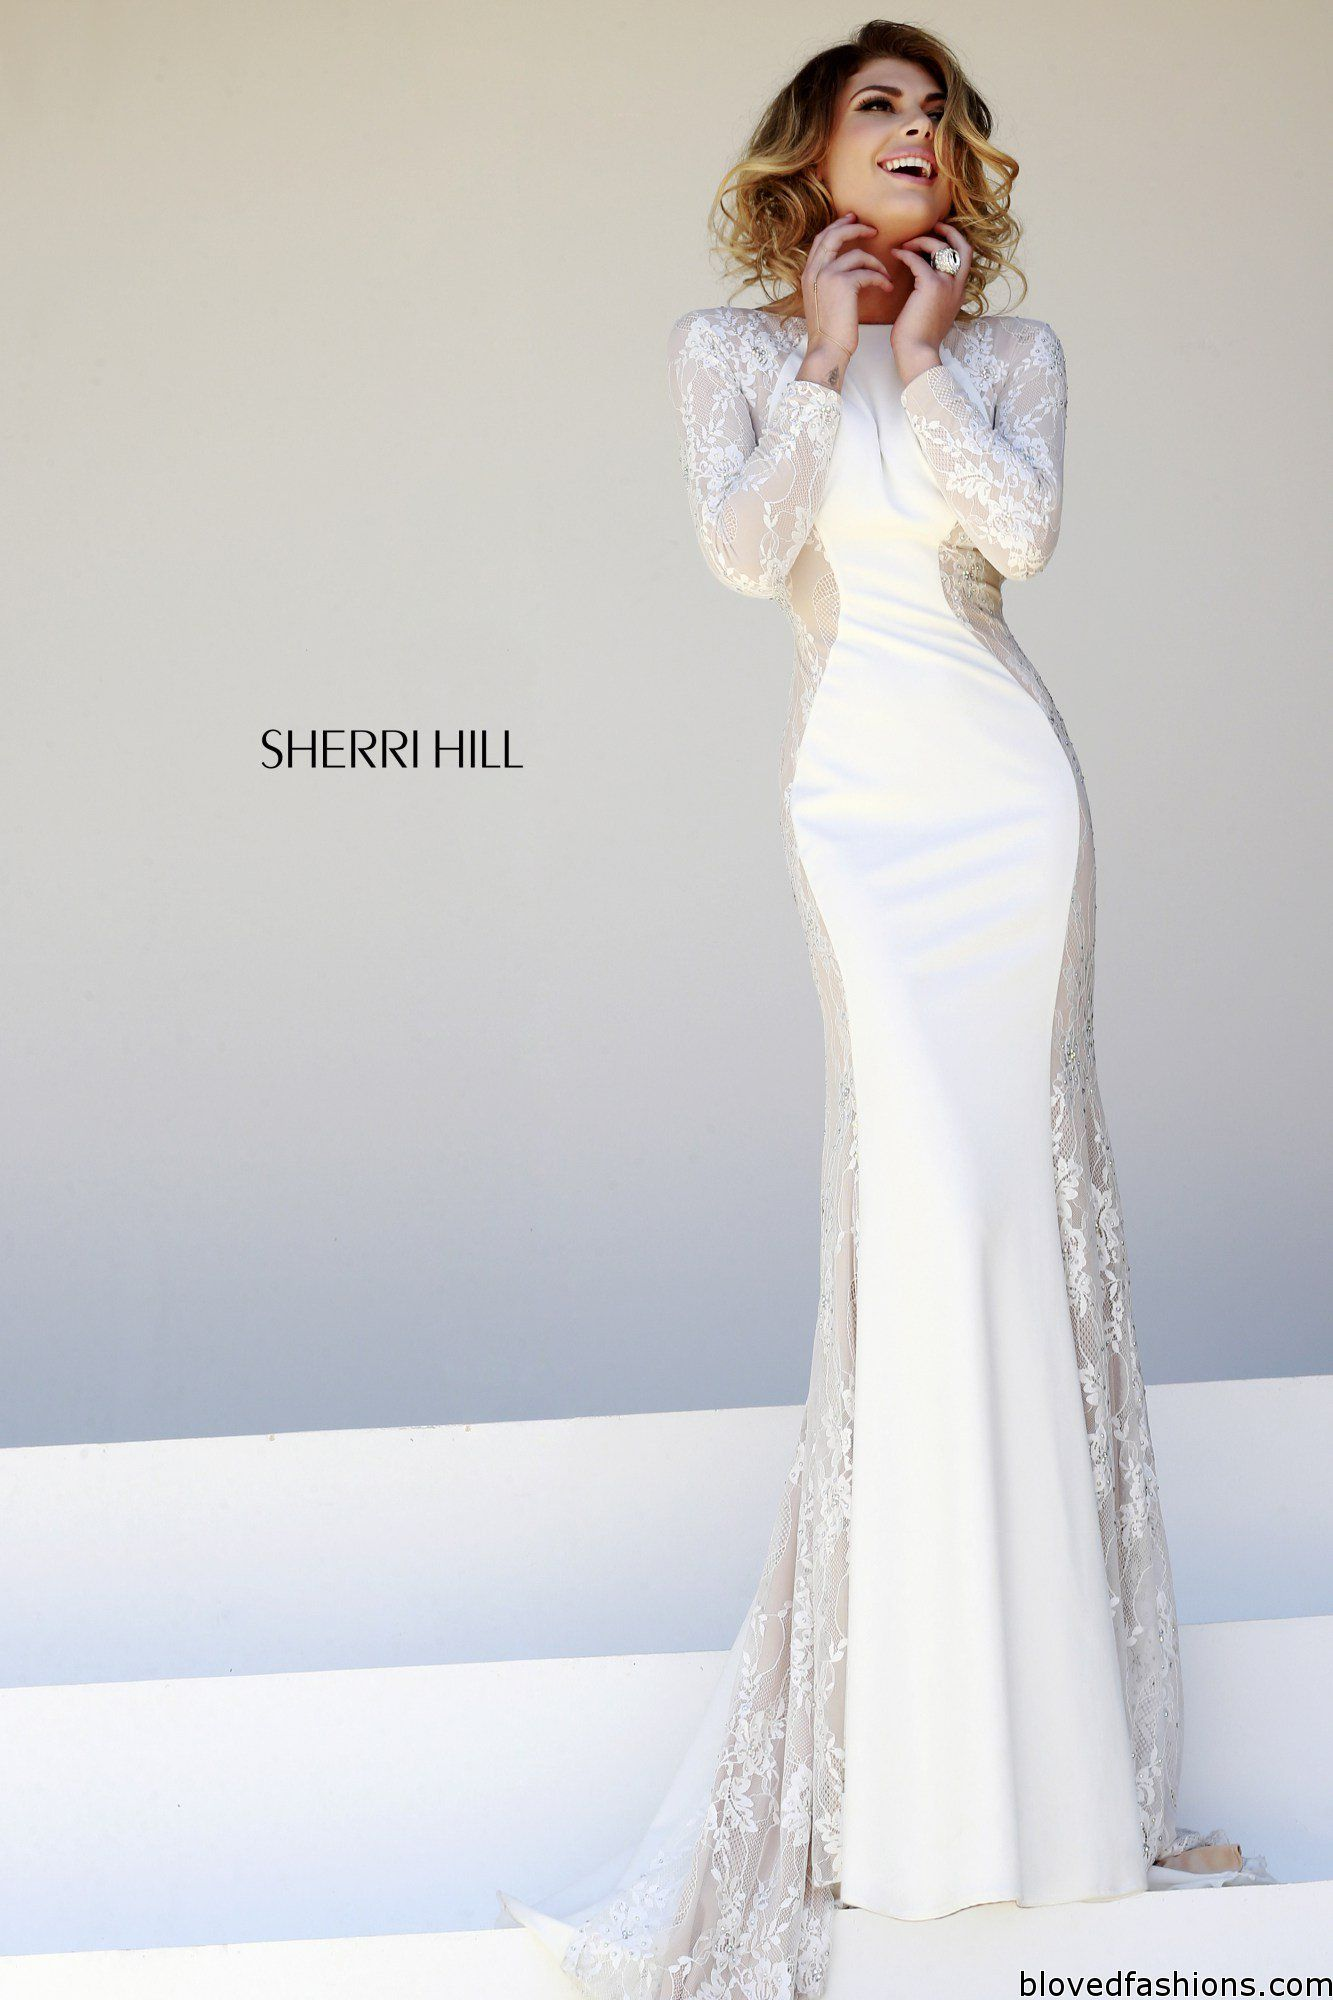 Sherri hill at bloved boutique blovedprom sherrihill